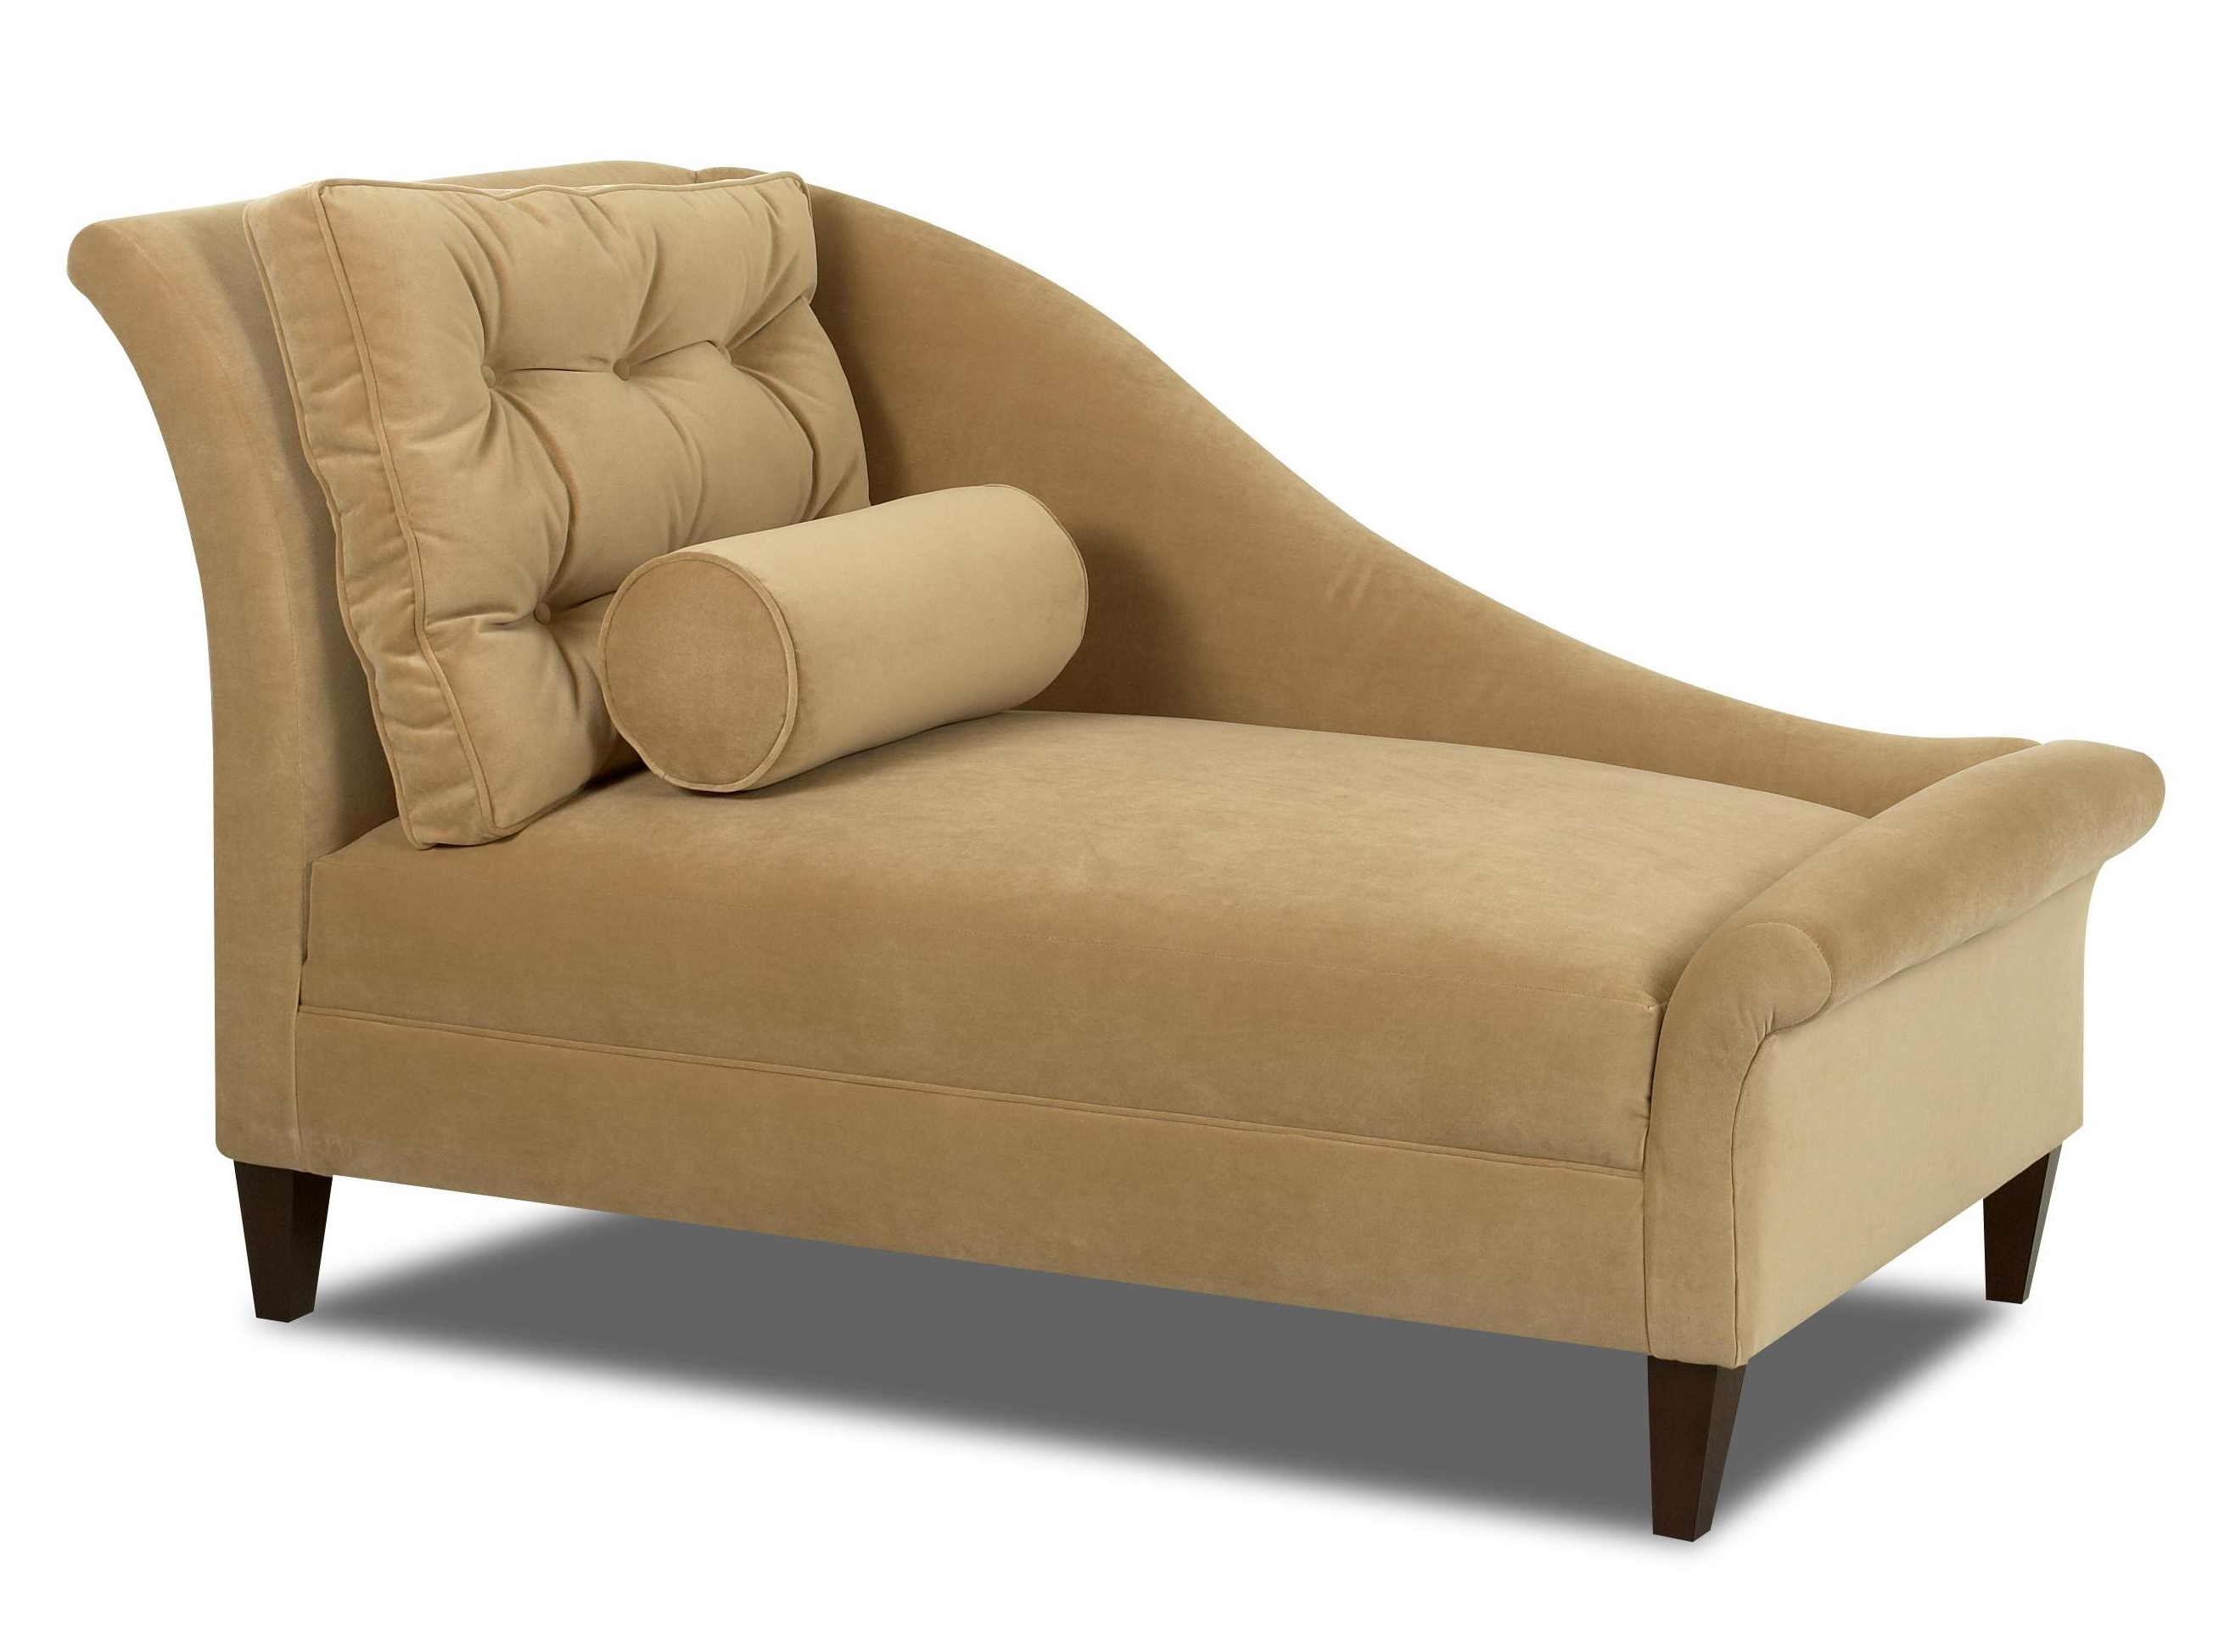 Inexpensive Chaise Lounges Regarding Most Current Convertible Chair : Small Chaise Lounge Chair Tufted Chaise Lounge (View 8 of 15)